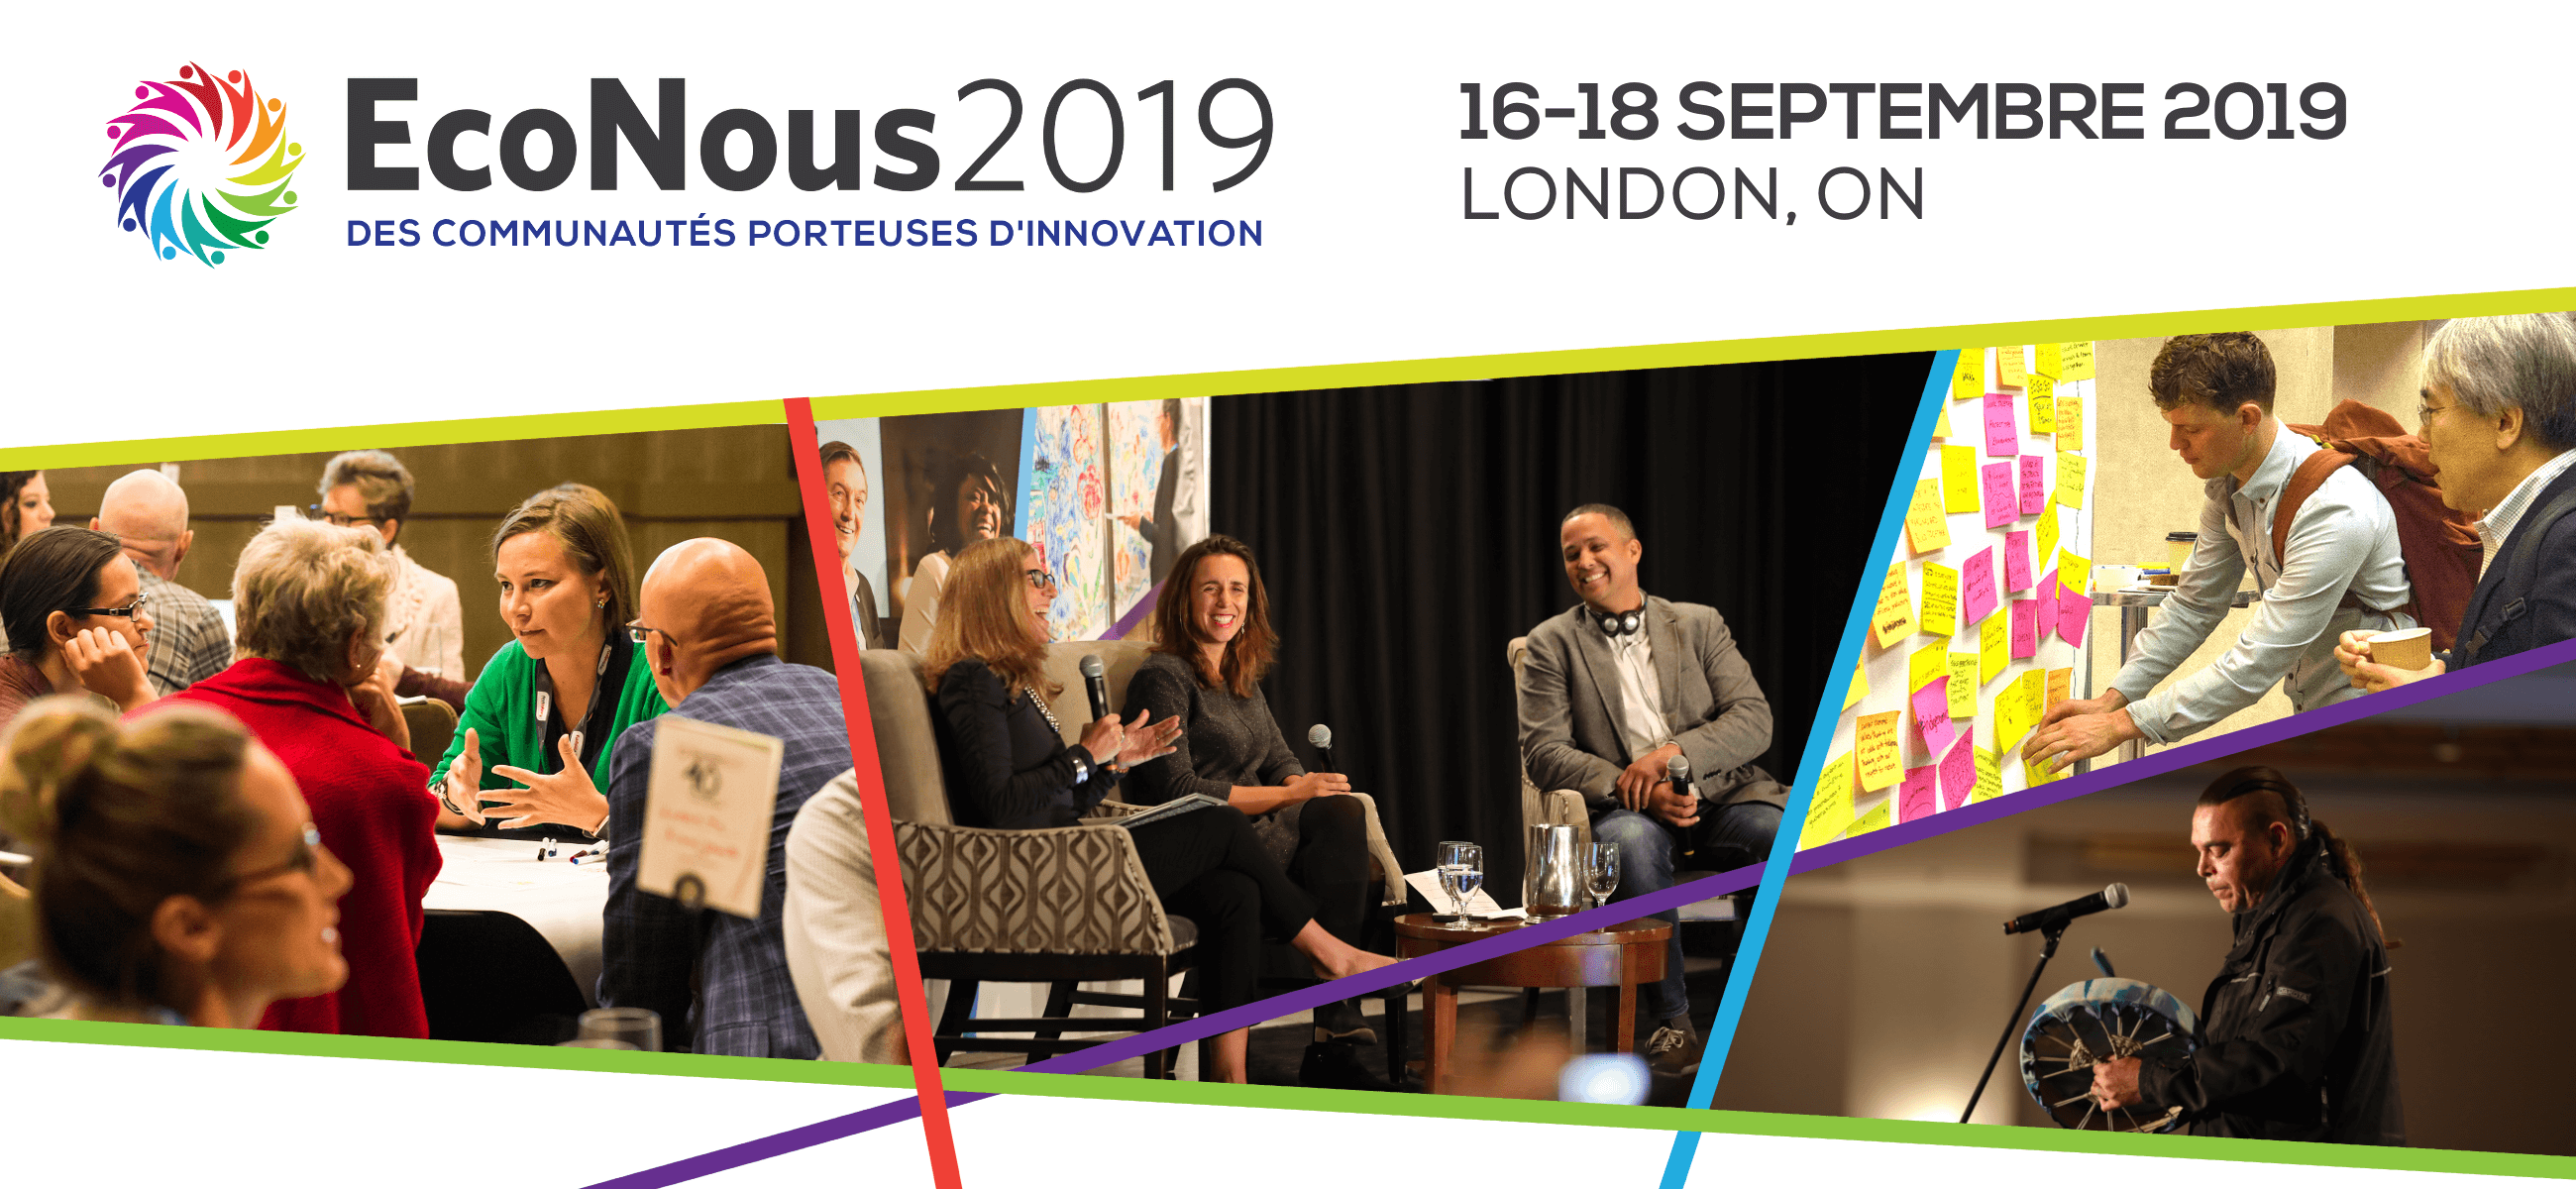 EcoNous2019 : des communautés porteuses d'innovation (16-18 septembre, London, ON)